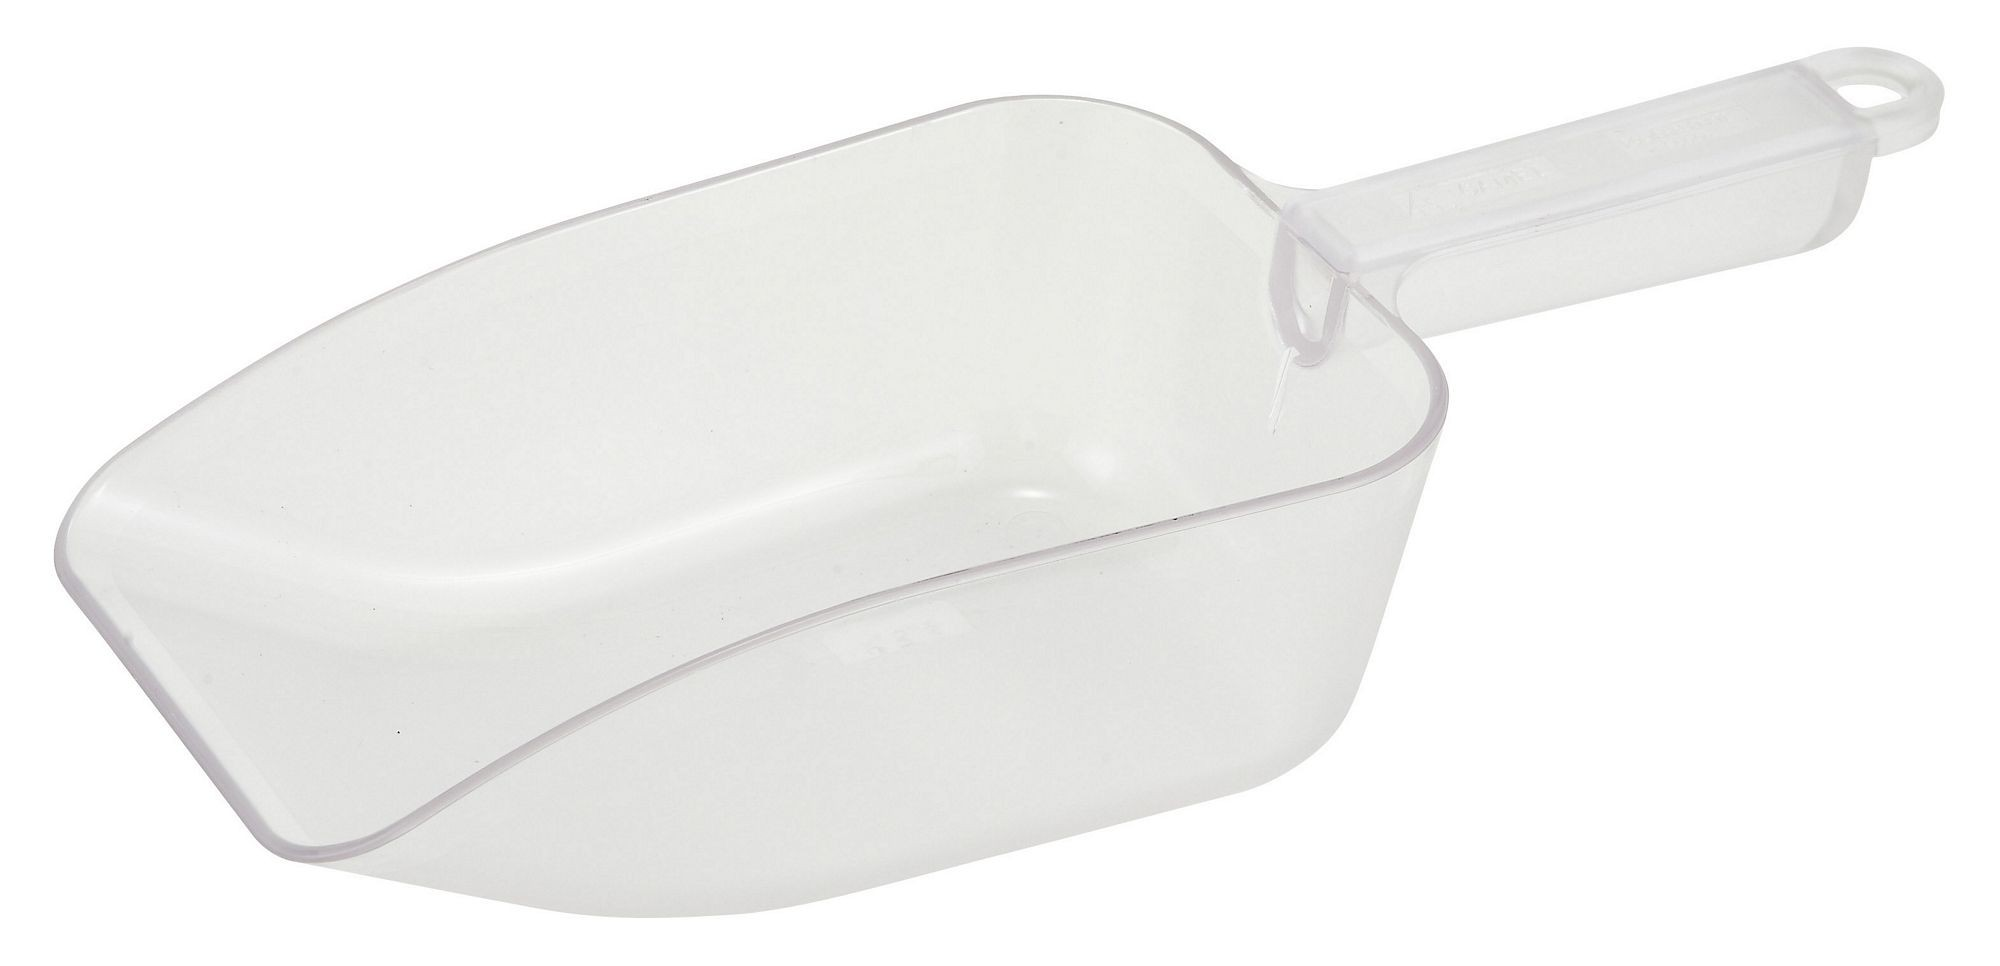 Polycarbonate 30 Oz. Ice / Candy Scoop